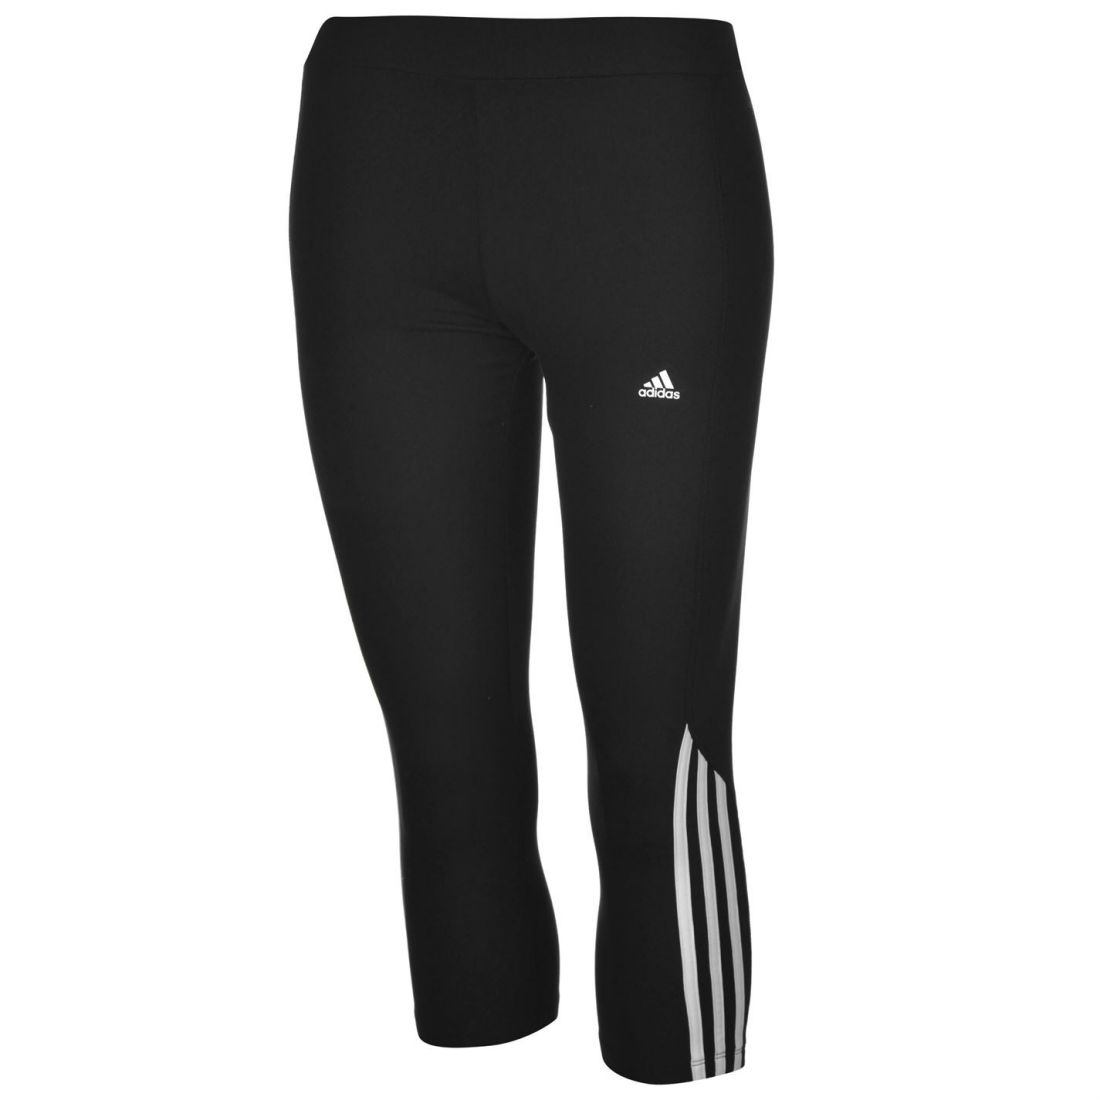 Image is loading adidas-Womens-Ladies-Quest-Three-Quarter-Running-Tights- ffcc97d01024